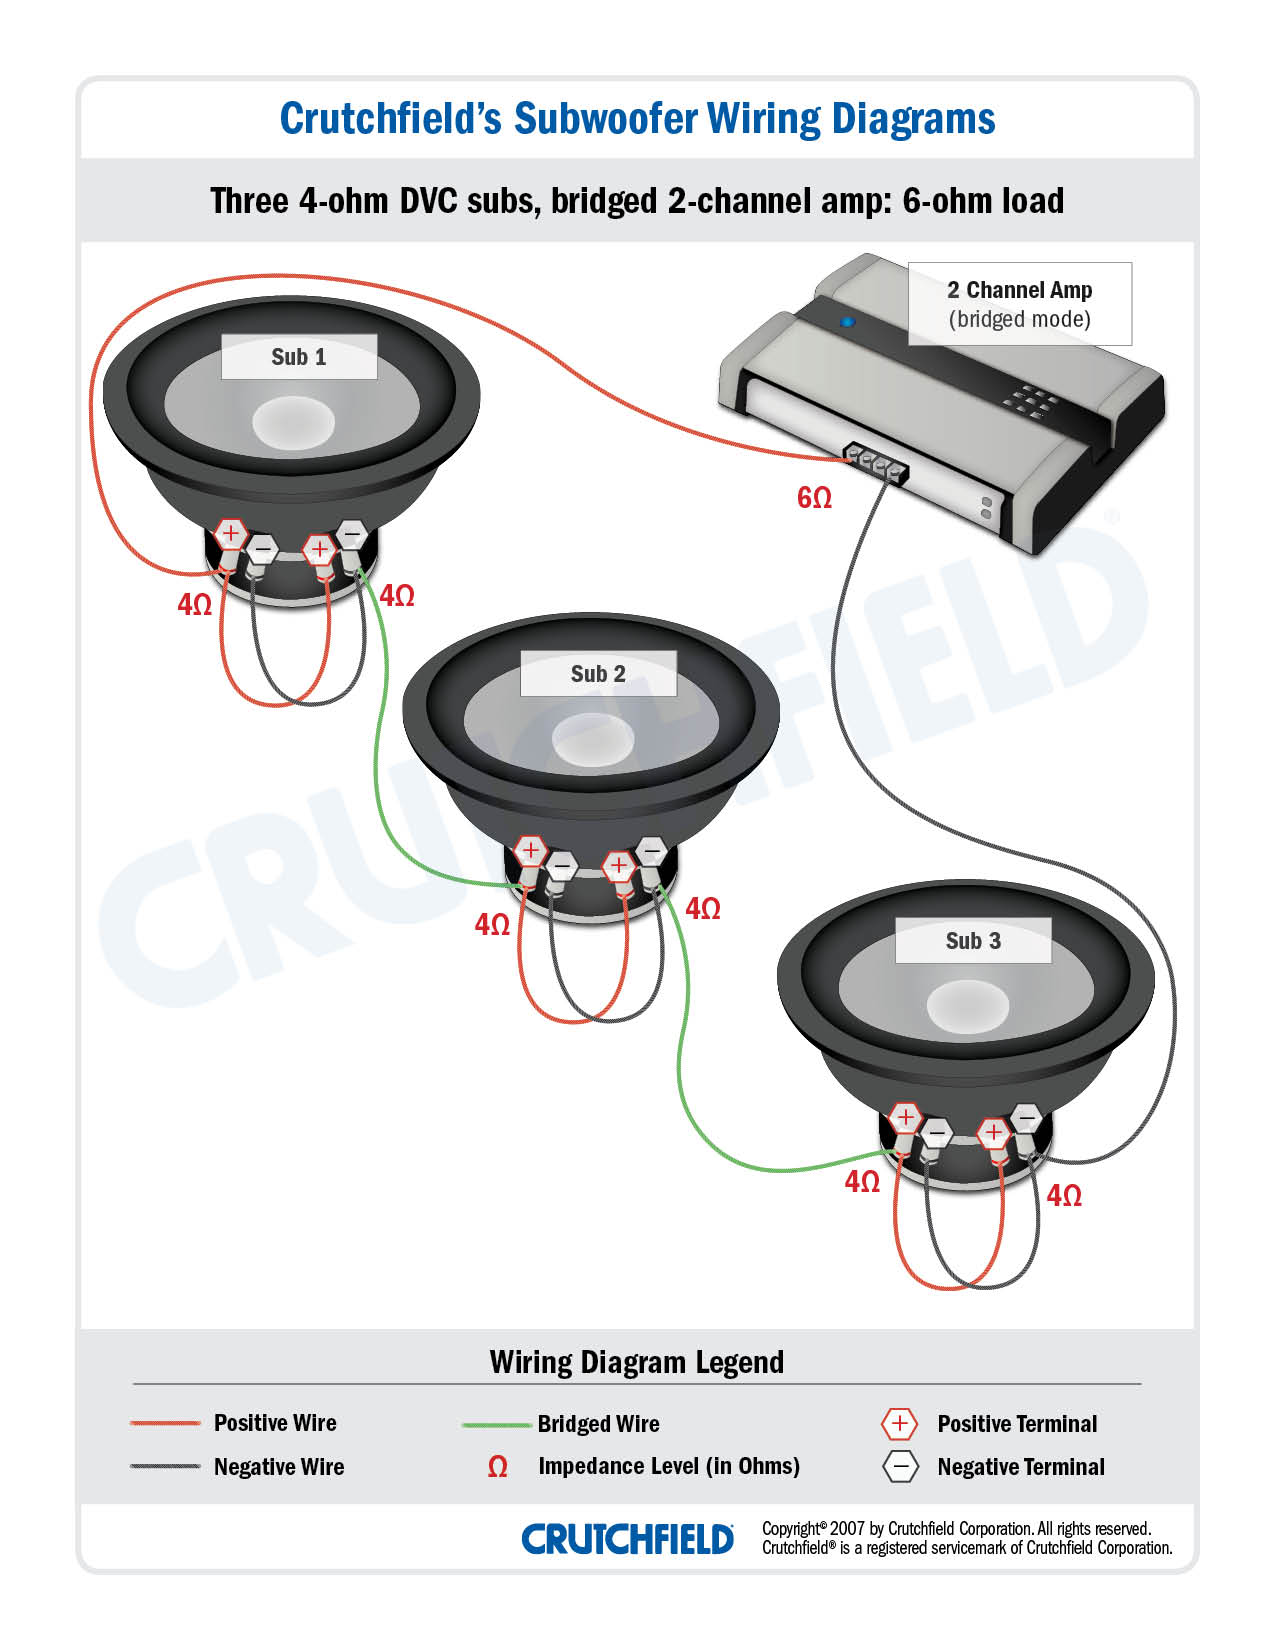 3 DVC 4 ohm 2 ch subwoofer wiring diagrams kicker comp r 12 wiring diagram at webbmarketing.co